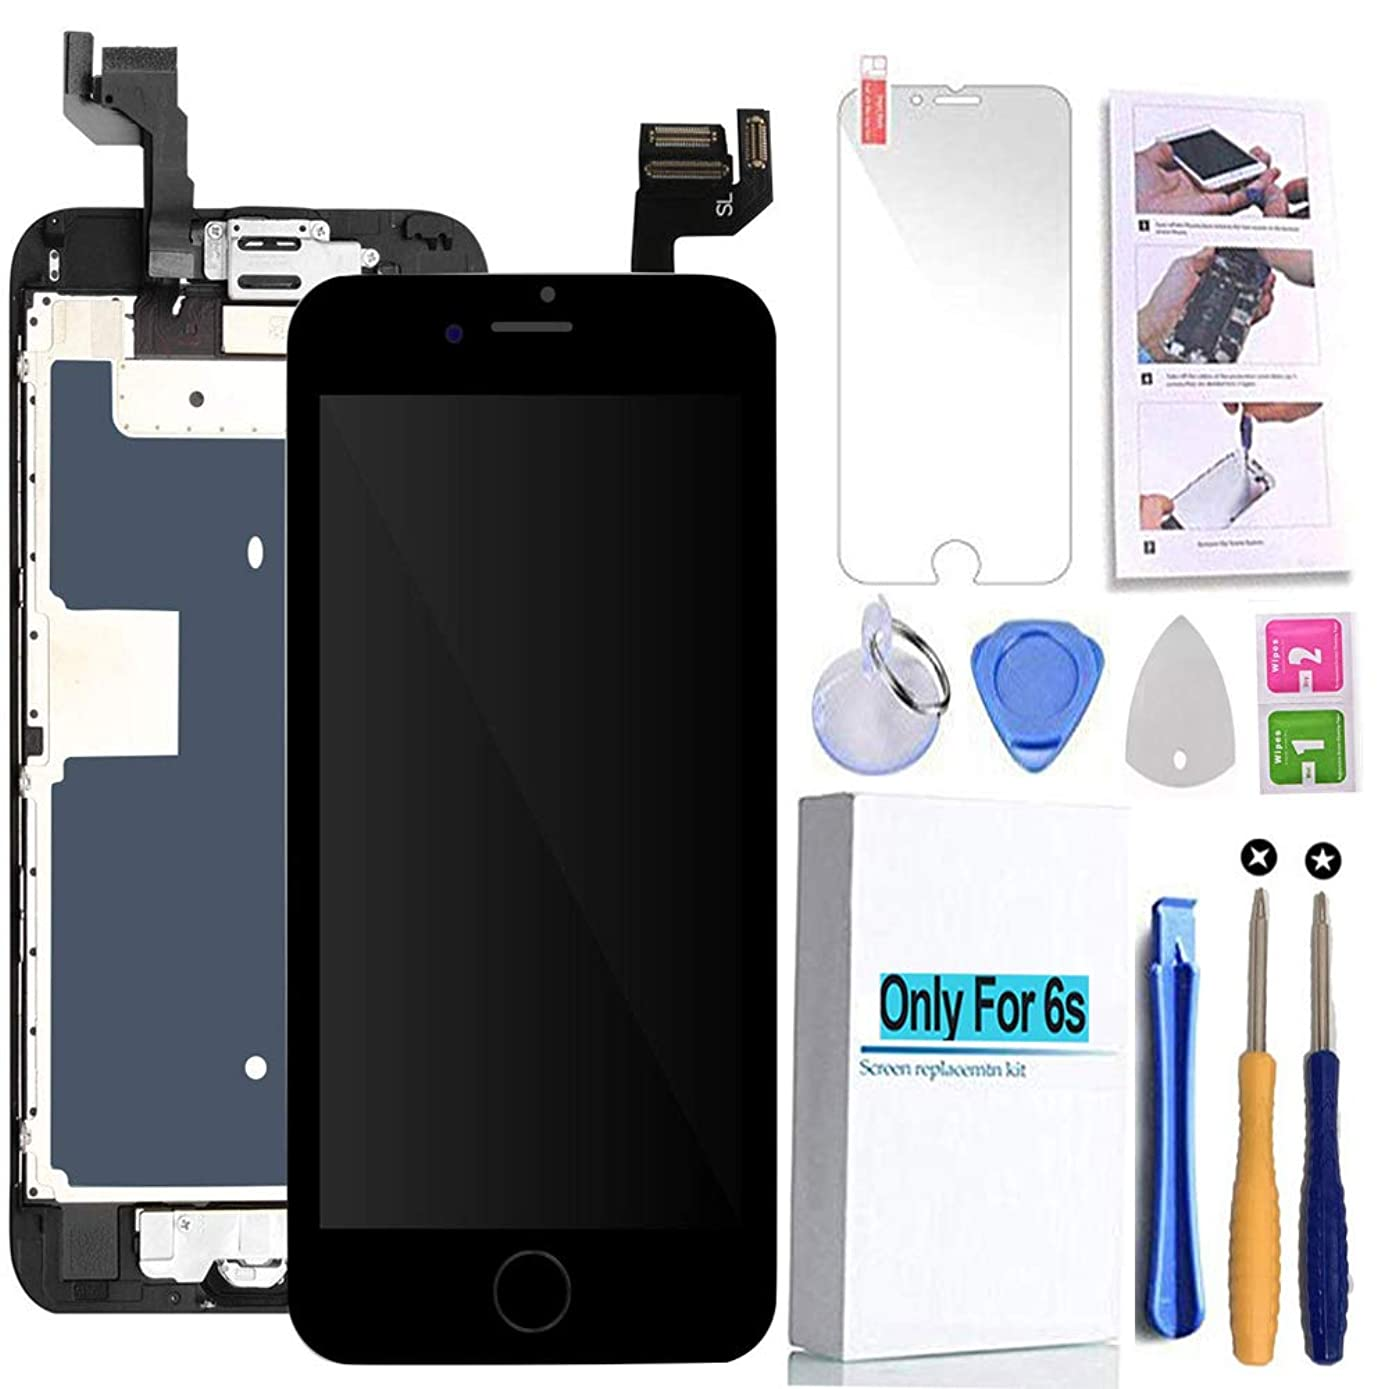 Screen Replacement Compatible iPhone 6s Black 4.7(inch) LCD Display Touch Digitizer Assembly Repair Kit & Home Button,Ear Speaker, Front Camera,Proximity Sensor, Repair Tools